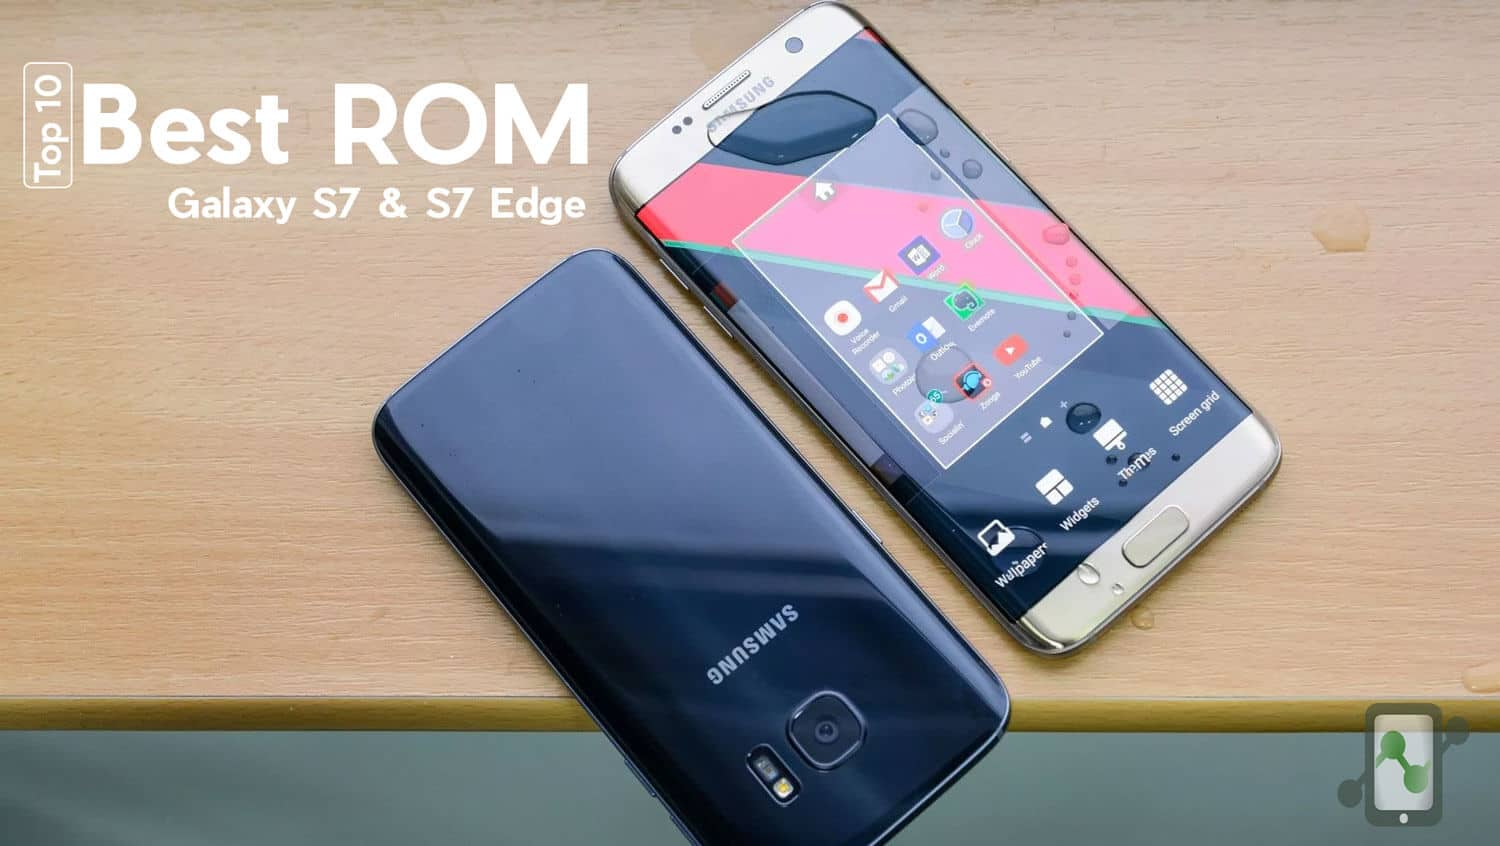 Top 10 Best ROMs For Samsung Galaxy S7 & S7 Edge